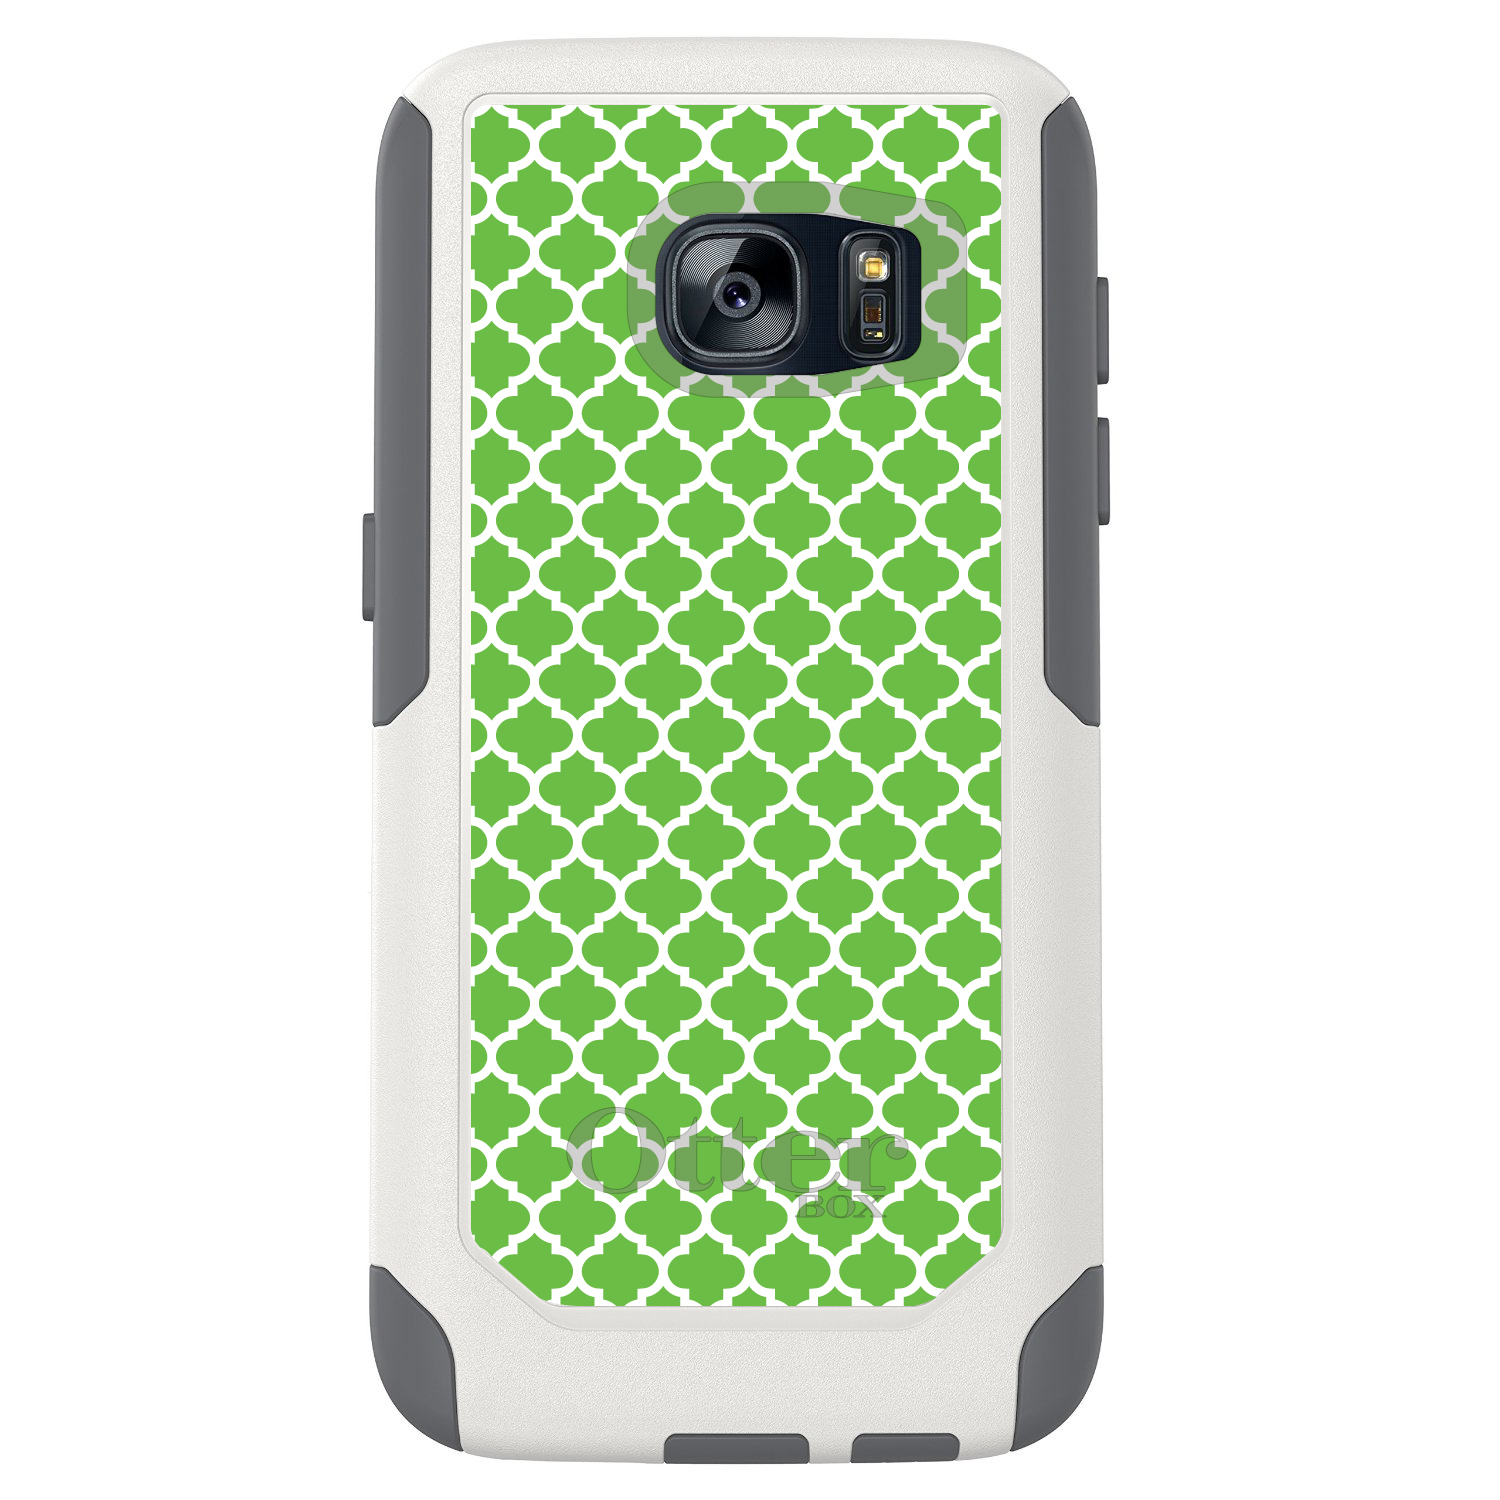 DistinctInk™ Custom White OtterBox Commuter Series Case for Samsung Galaxy S7 - Green White Moroccan Lattice